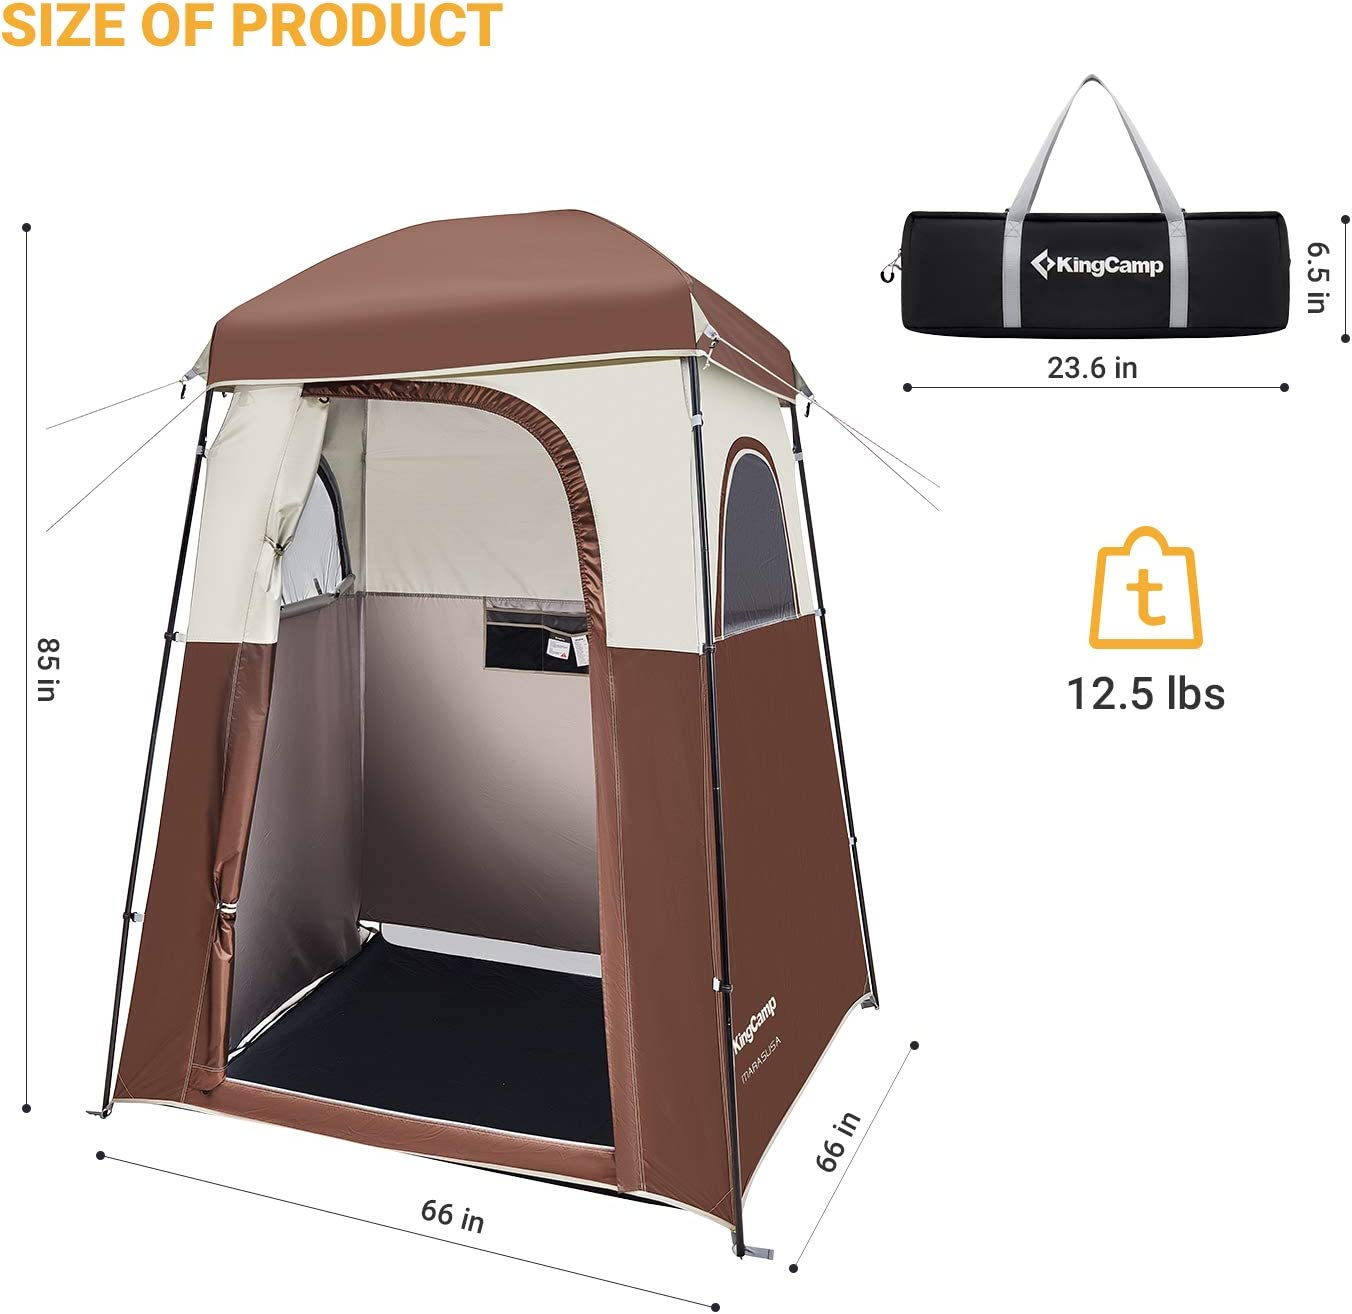 KingCamp Beach Tente Soleil Shade Shelter oversize avec prolongation étage Privacy porte